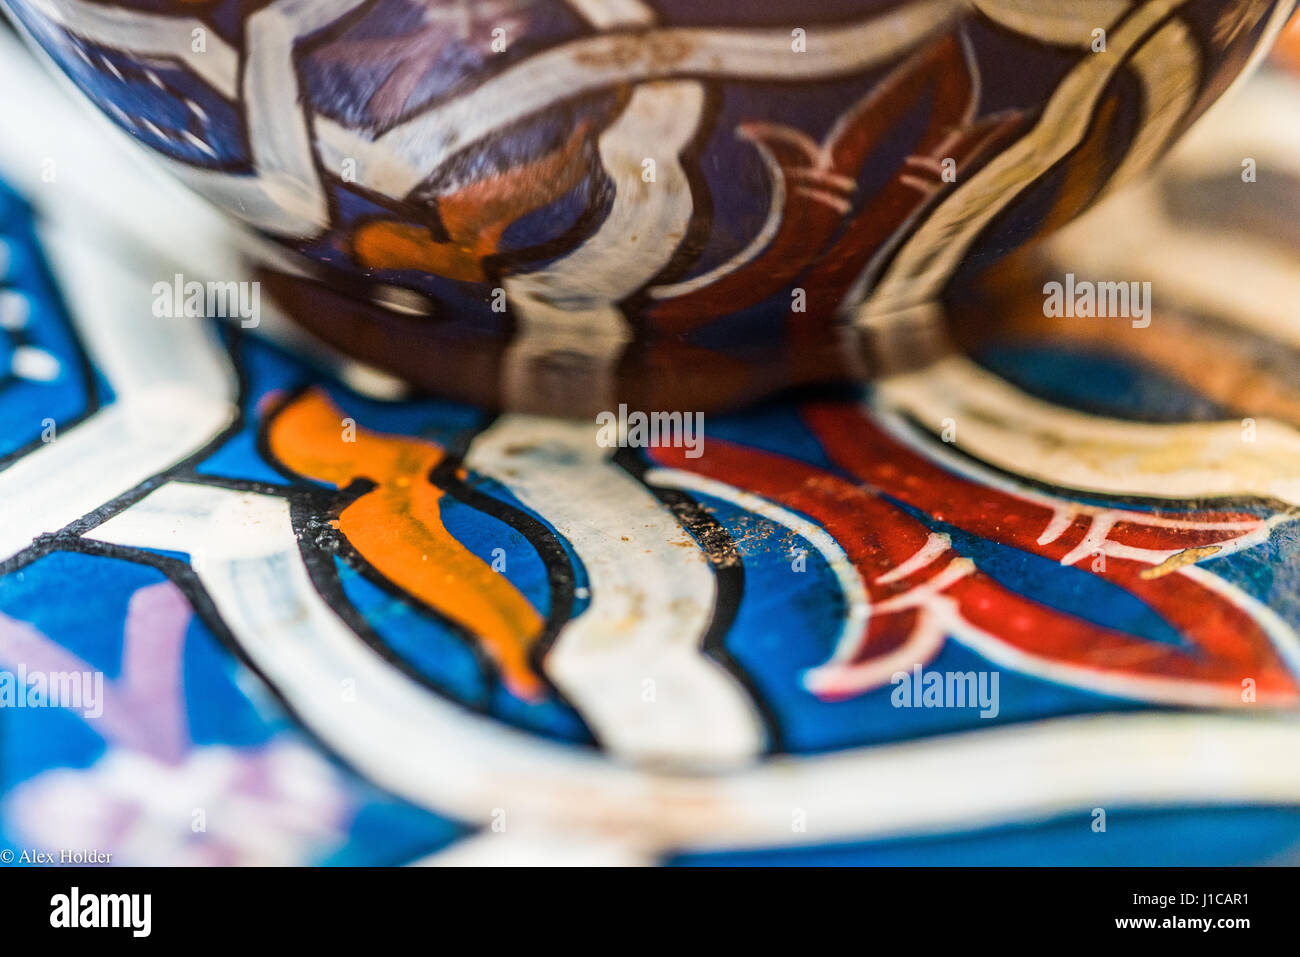 A cup of pour over coffee sits on a hand painted coffee table in a shop - Stock Image